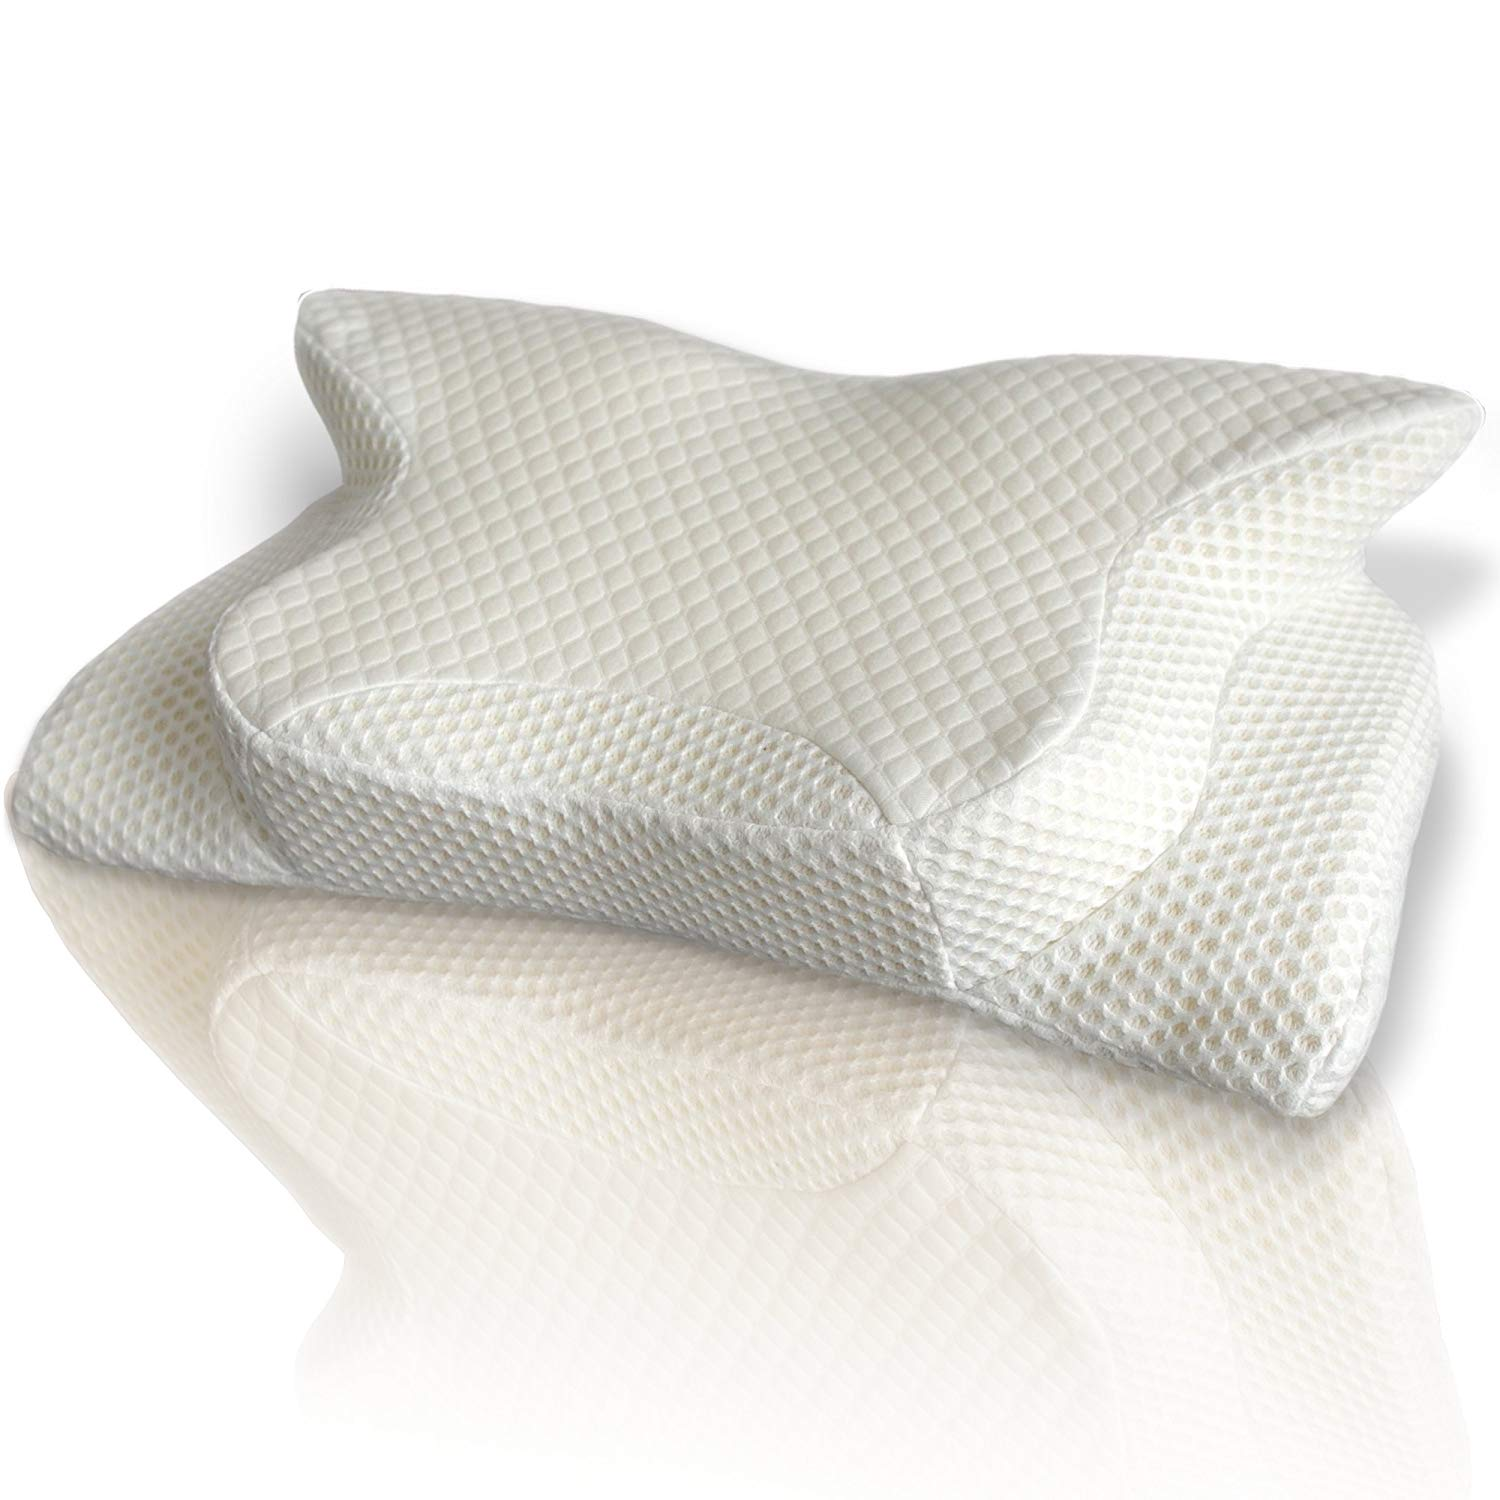 which pillow for shoulder pain is worth